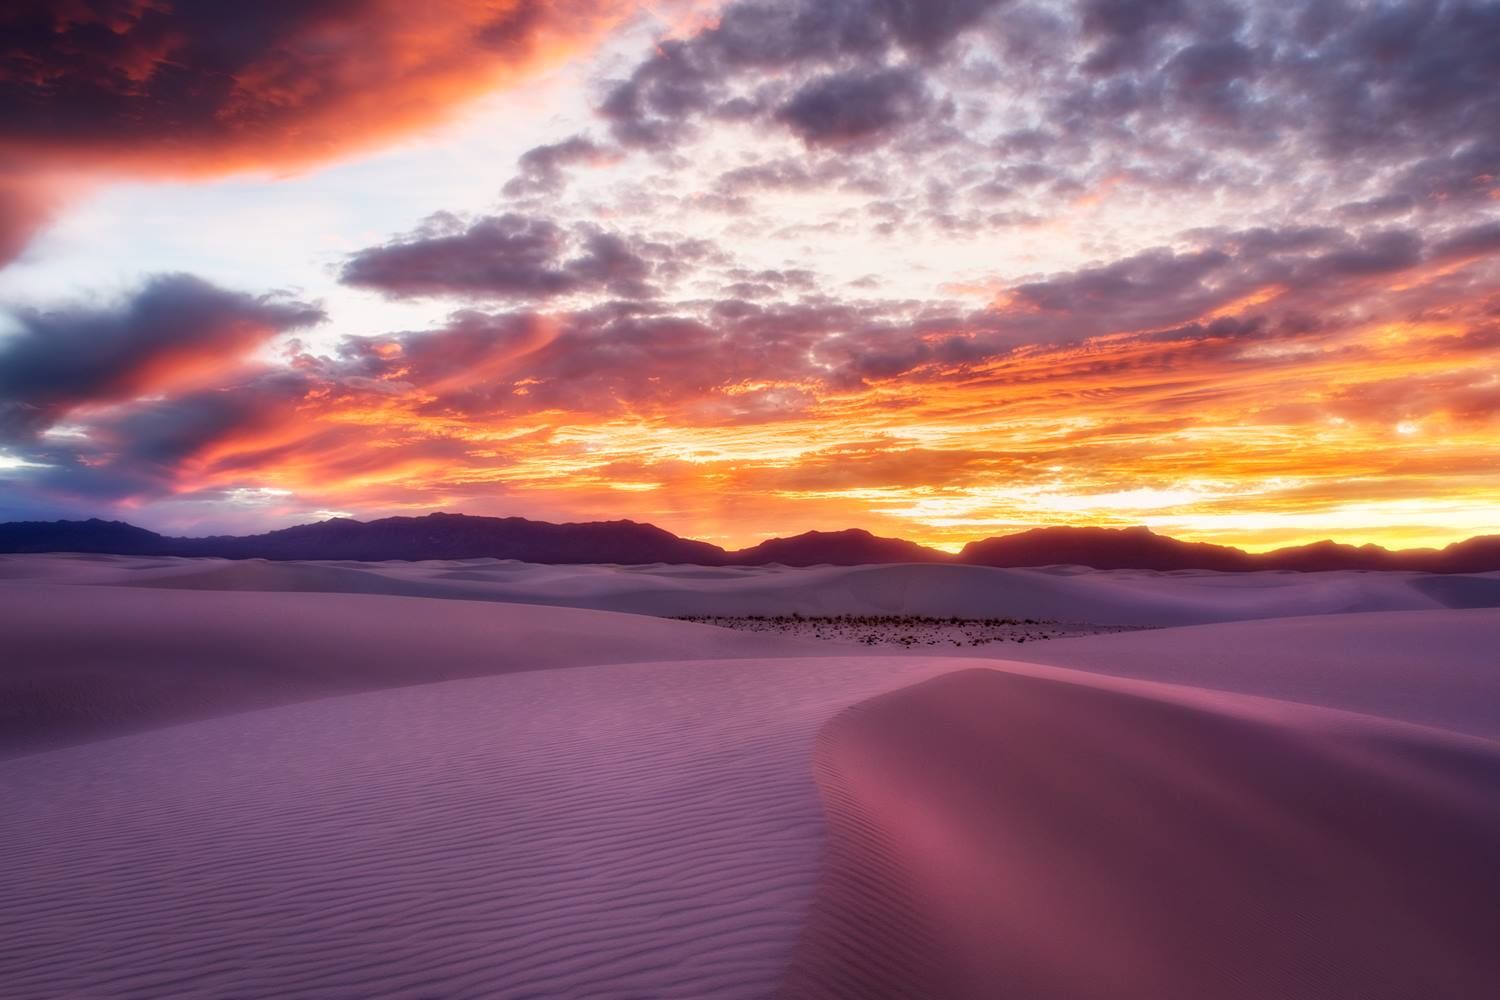 A Benro .6 soft grad filter was placed just above the mountains and horizon for this image. This helped balance out the intense light in the sky with the soft glow of the sand dunes. - White Sands National Monument, New Mexico